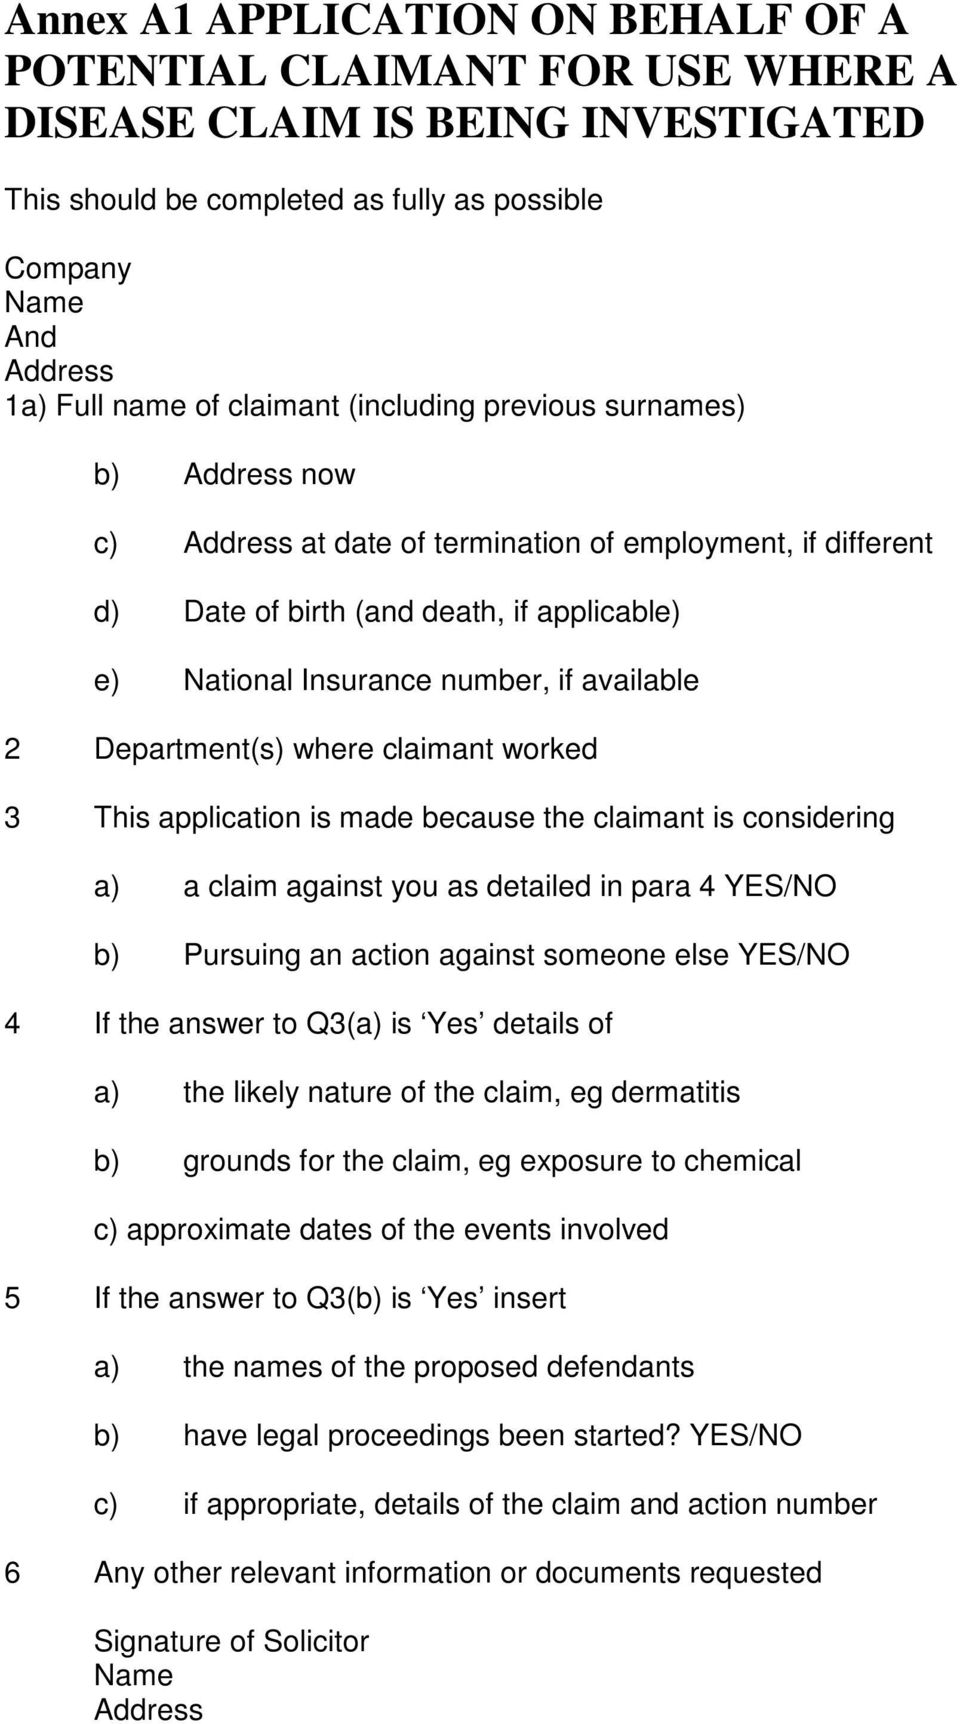 available 2 Department(s) where claimant worked 3 This application is made because the claimant is considering a) a claim against you as detailed in para 4 YES/NO b) Pursuing an action against